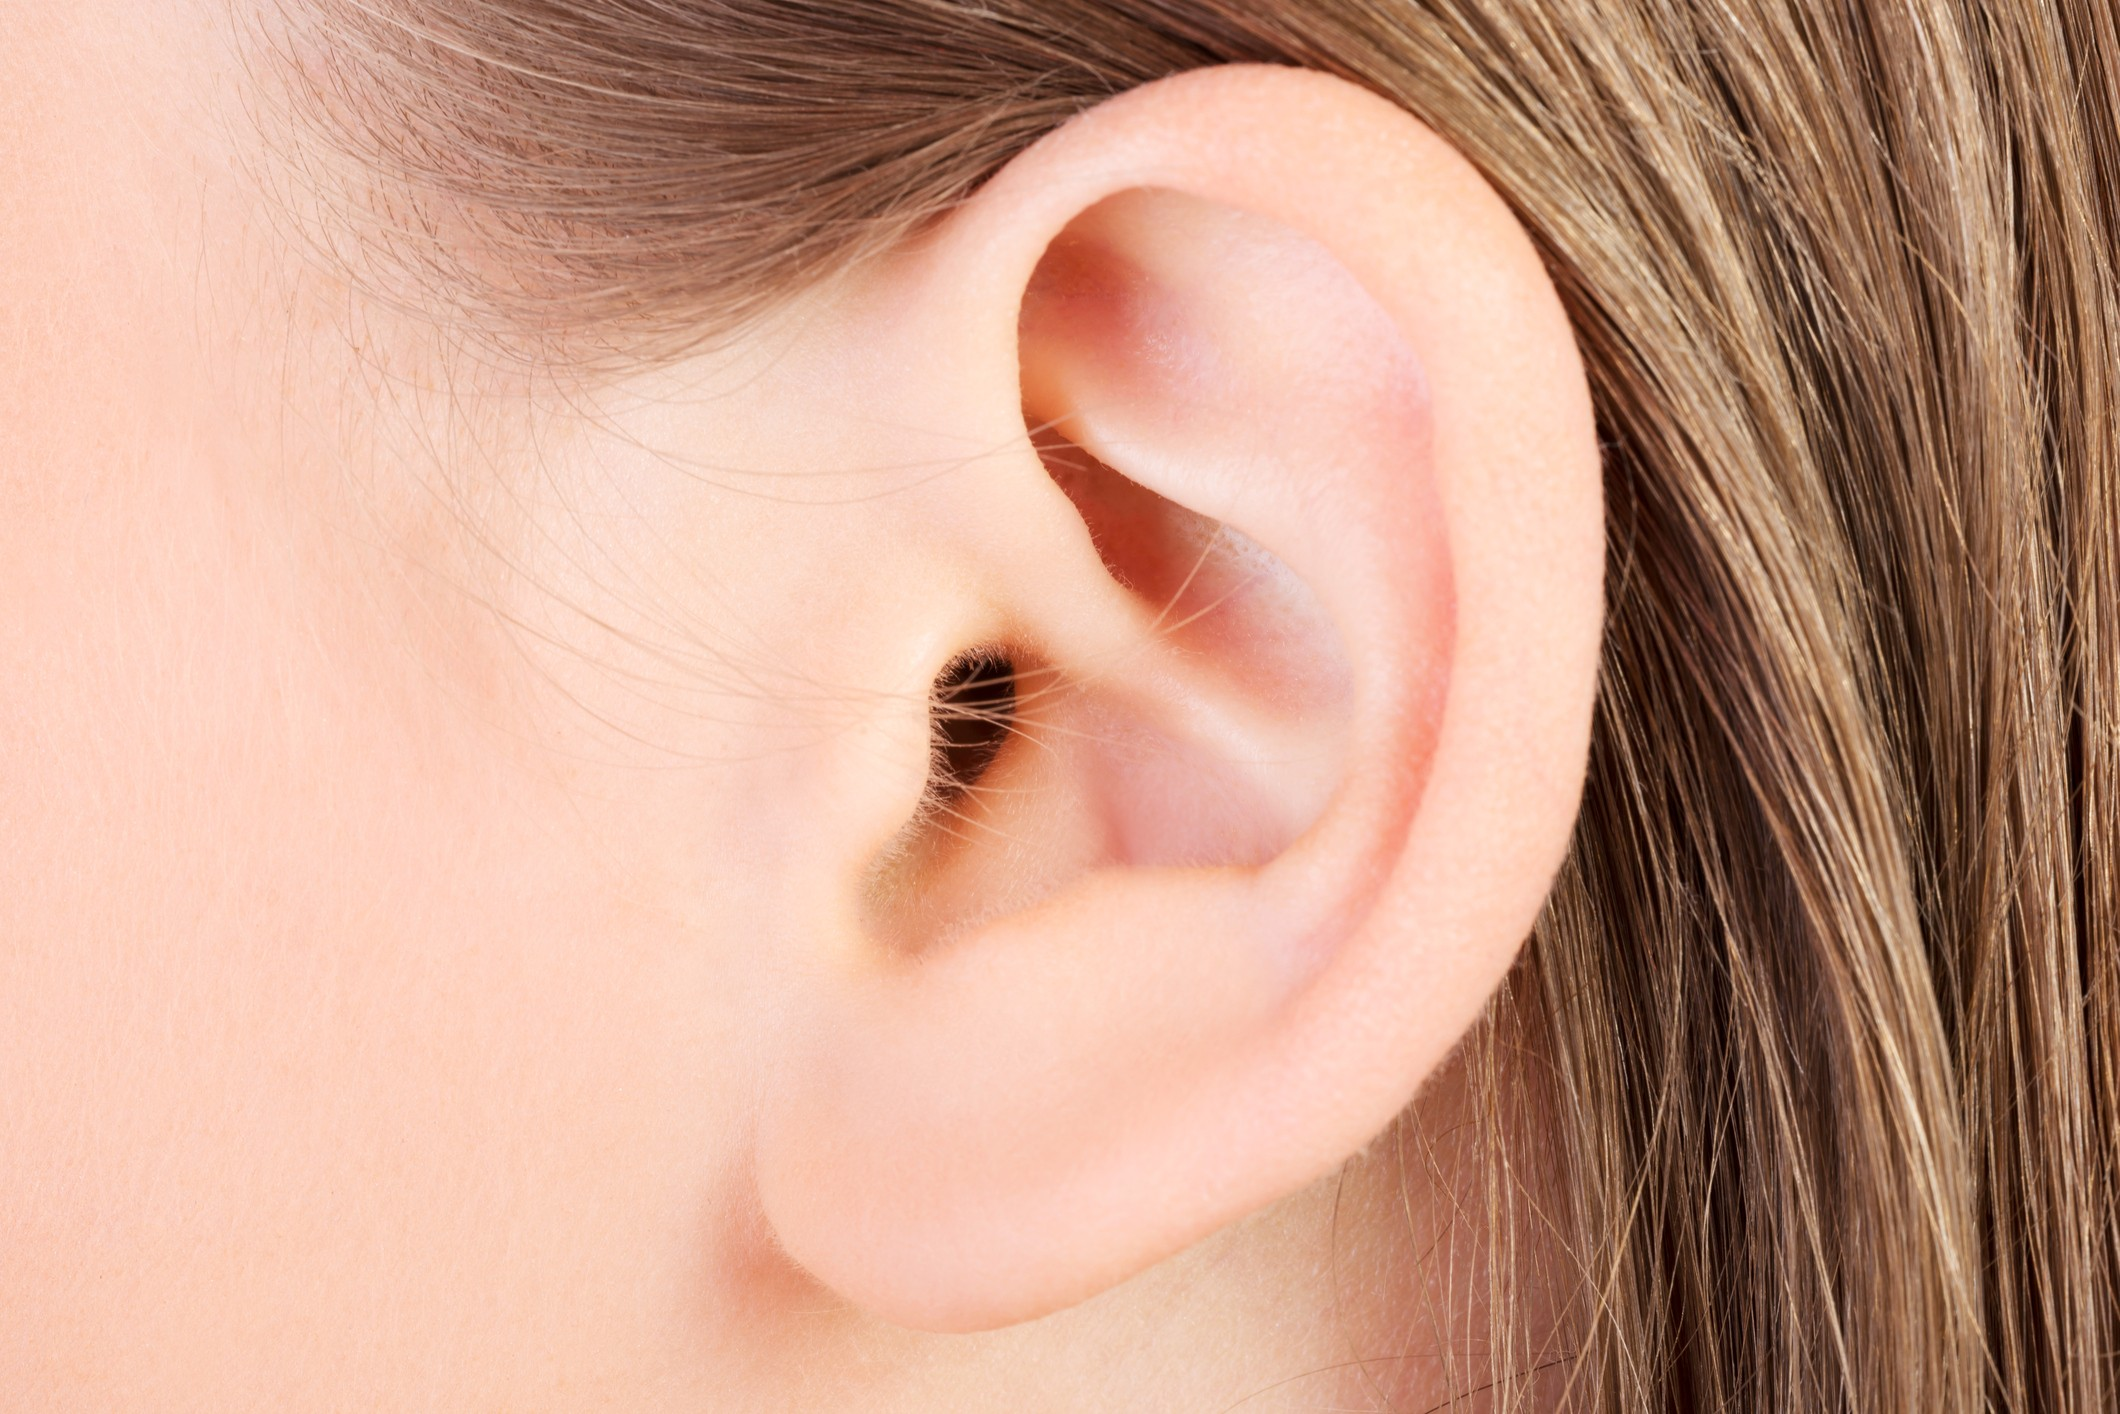 Close-up of a human ear of a person with blond hair